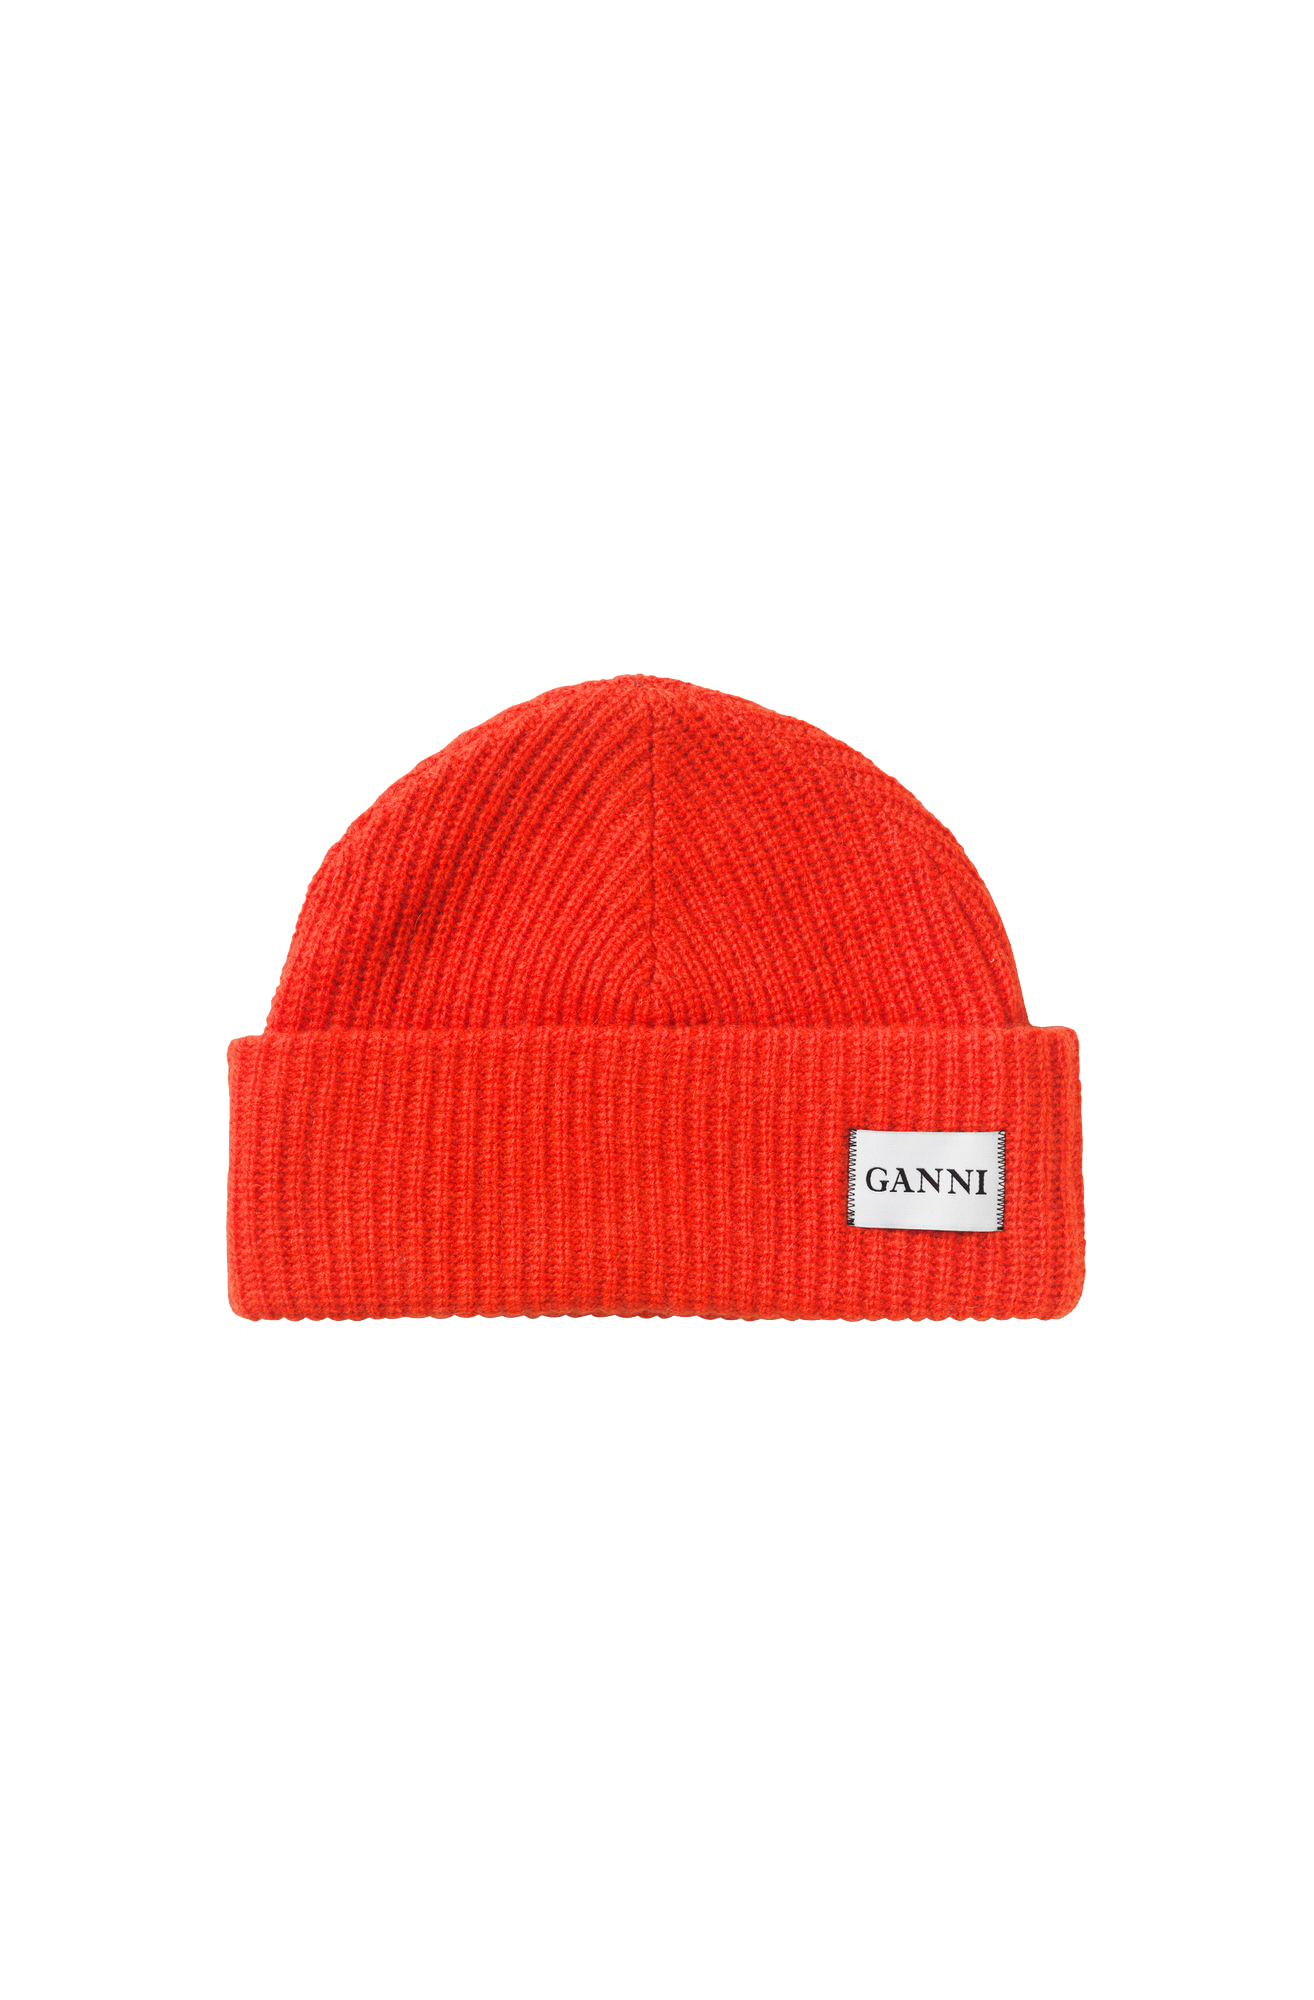 Image of   Ganni A1630 Hat Knit, 403 Fiery Red